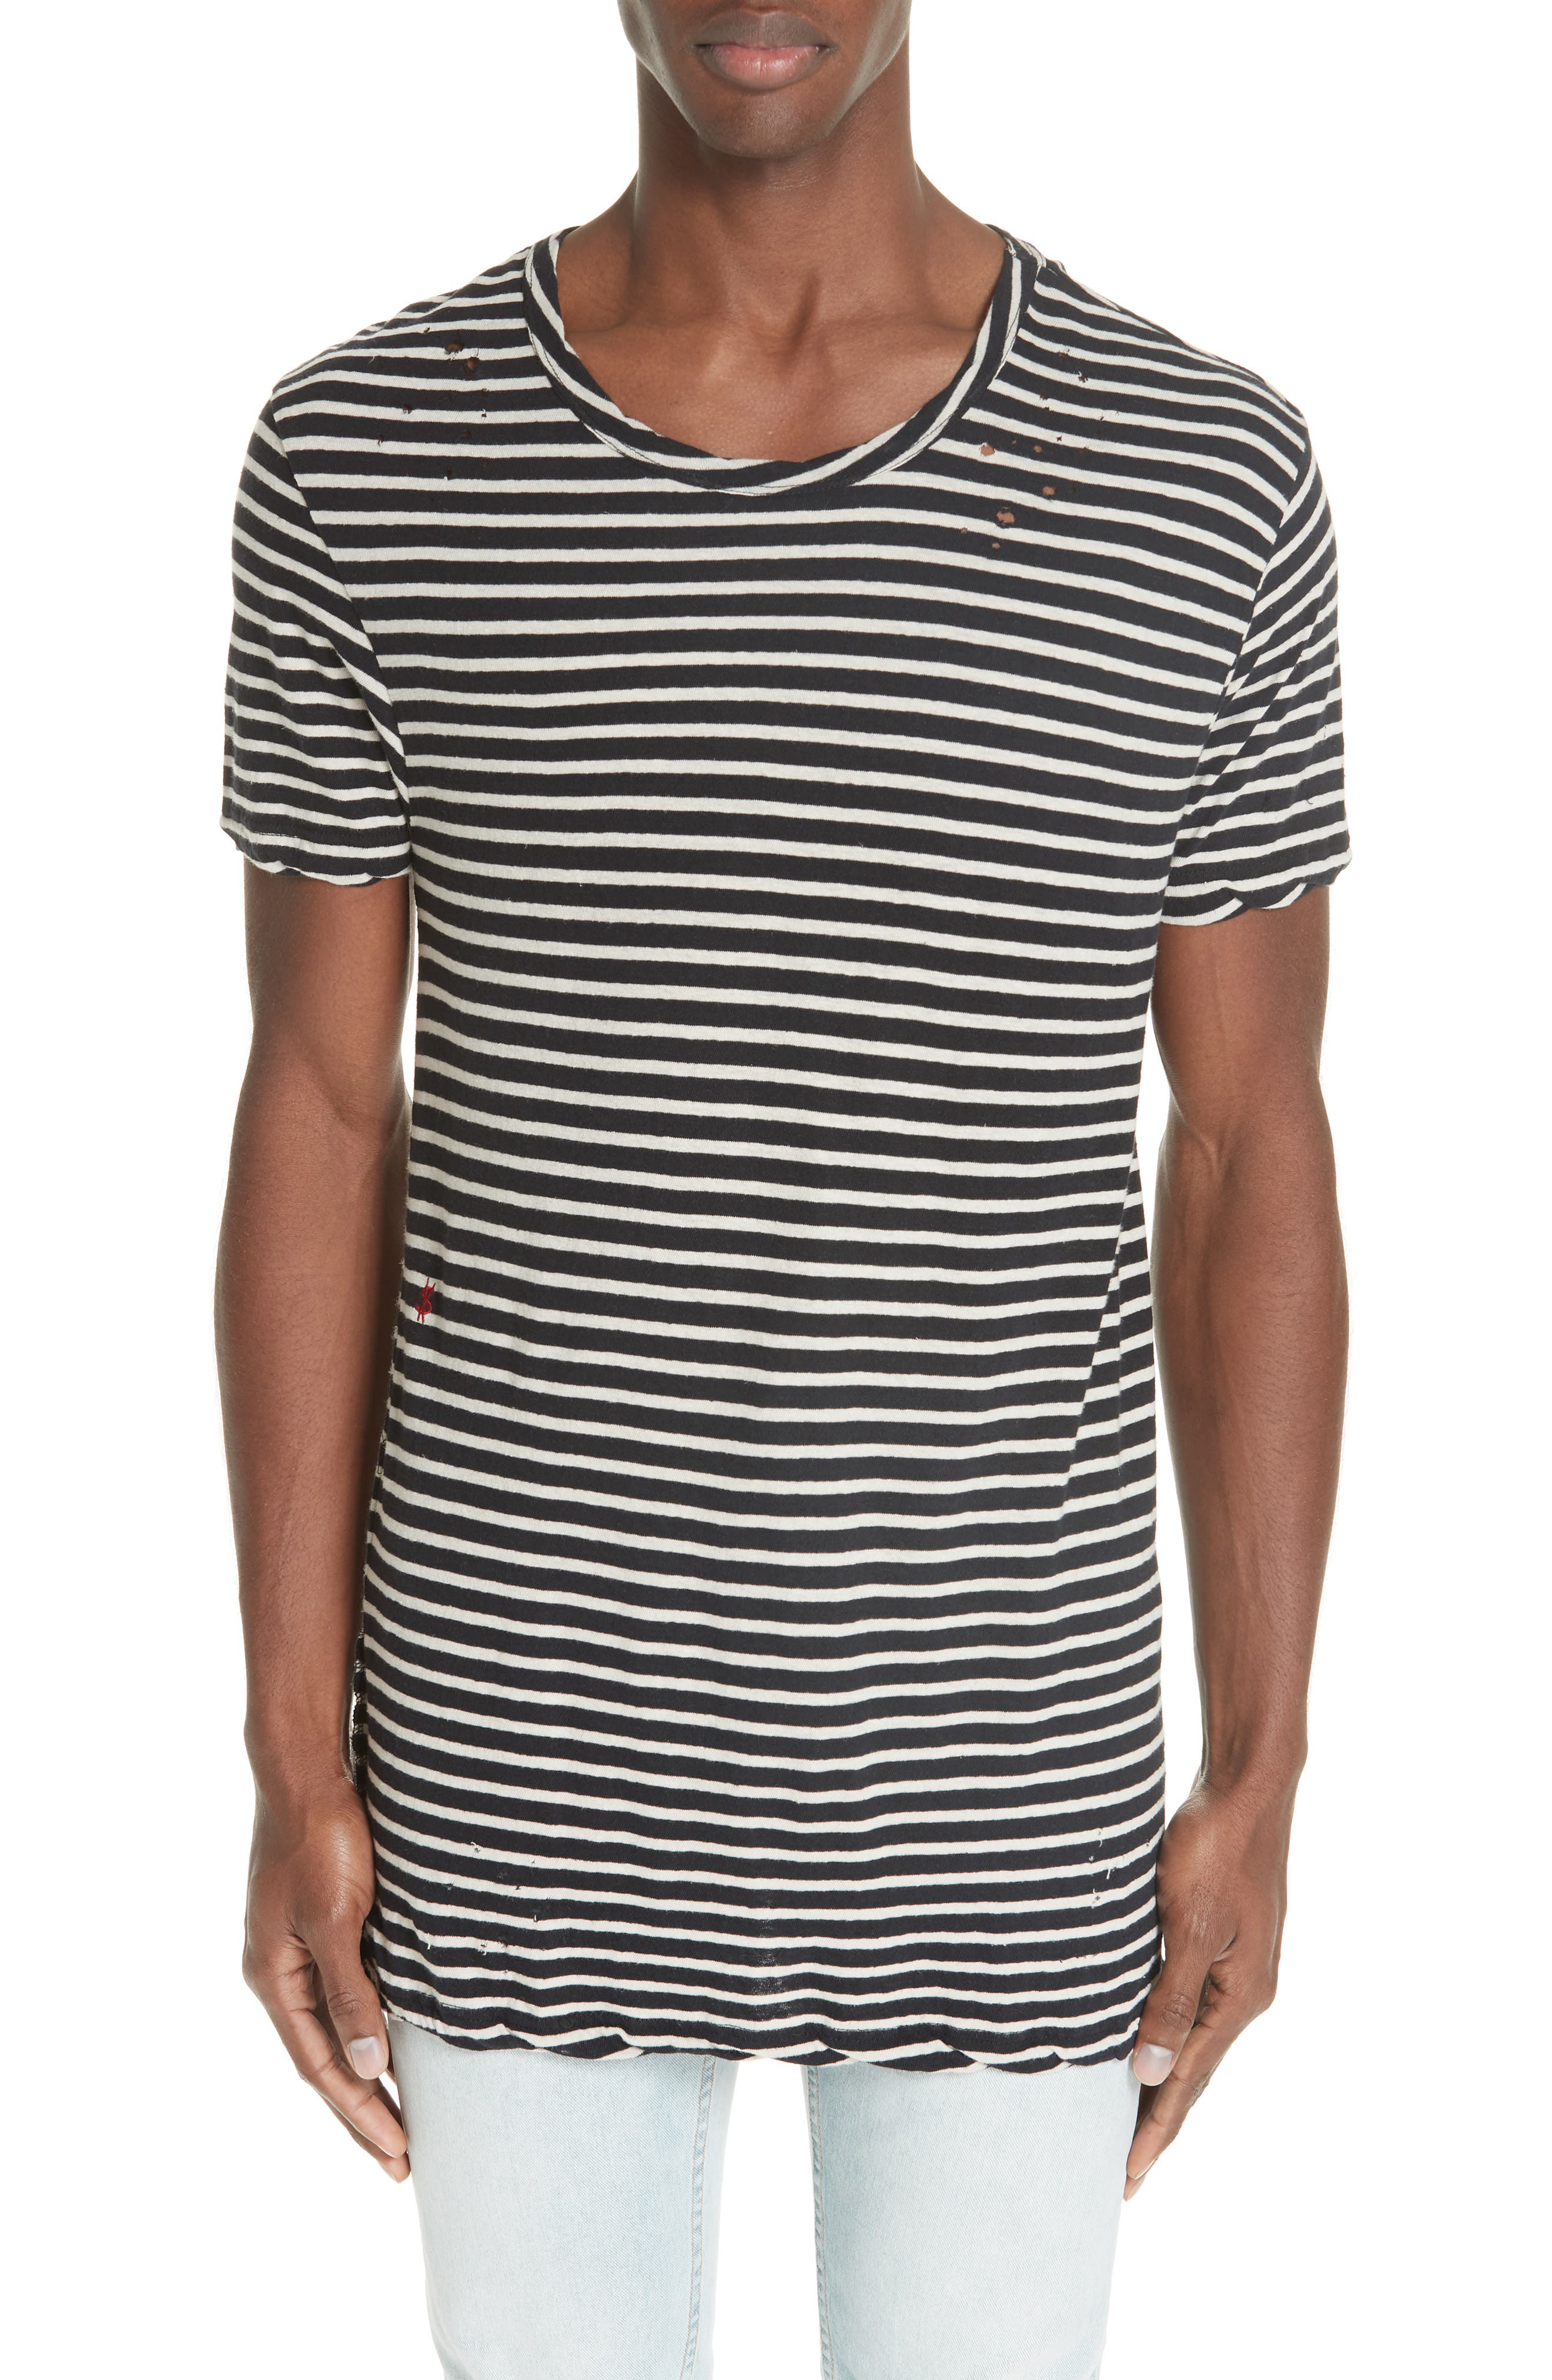 Sinister Distressed Stripe T-Shirt,                             Main thumbnail 1, color,                             960